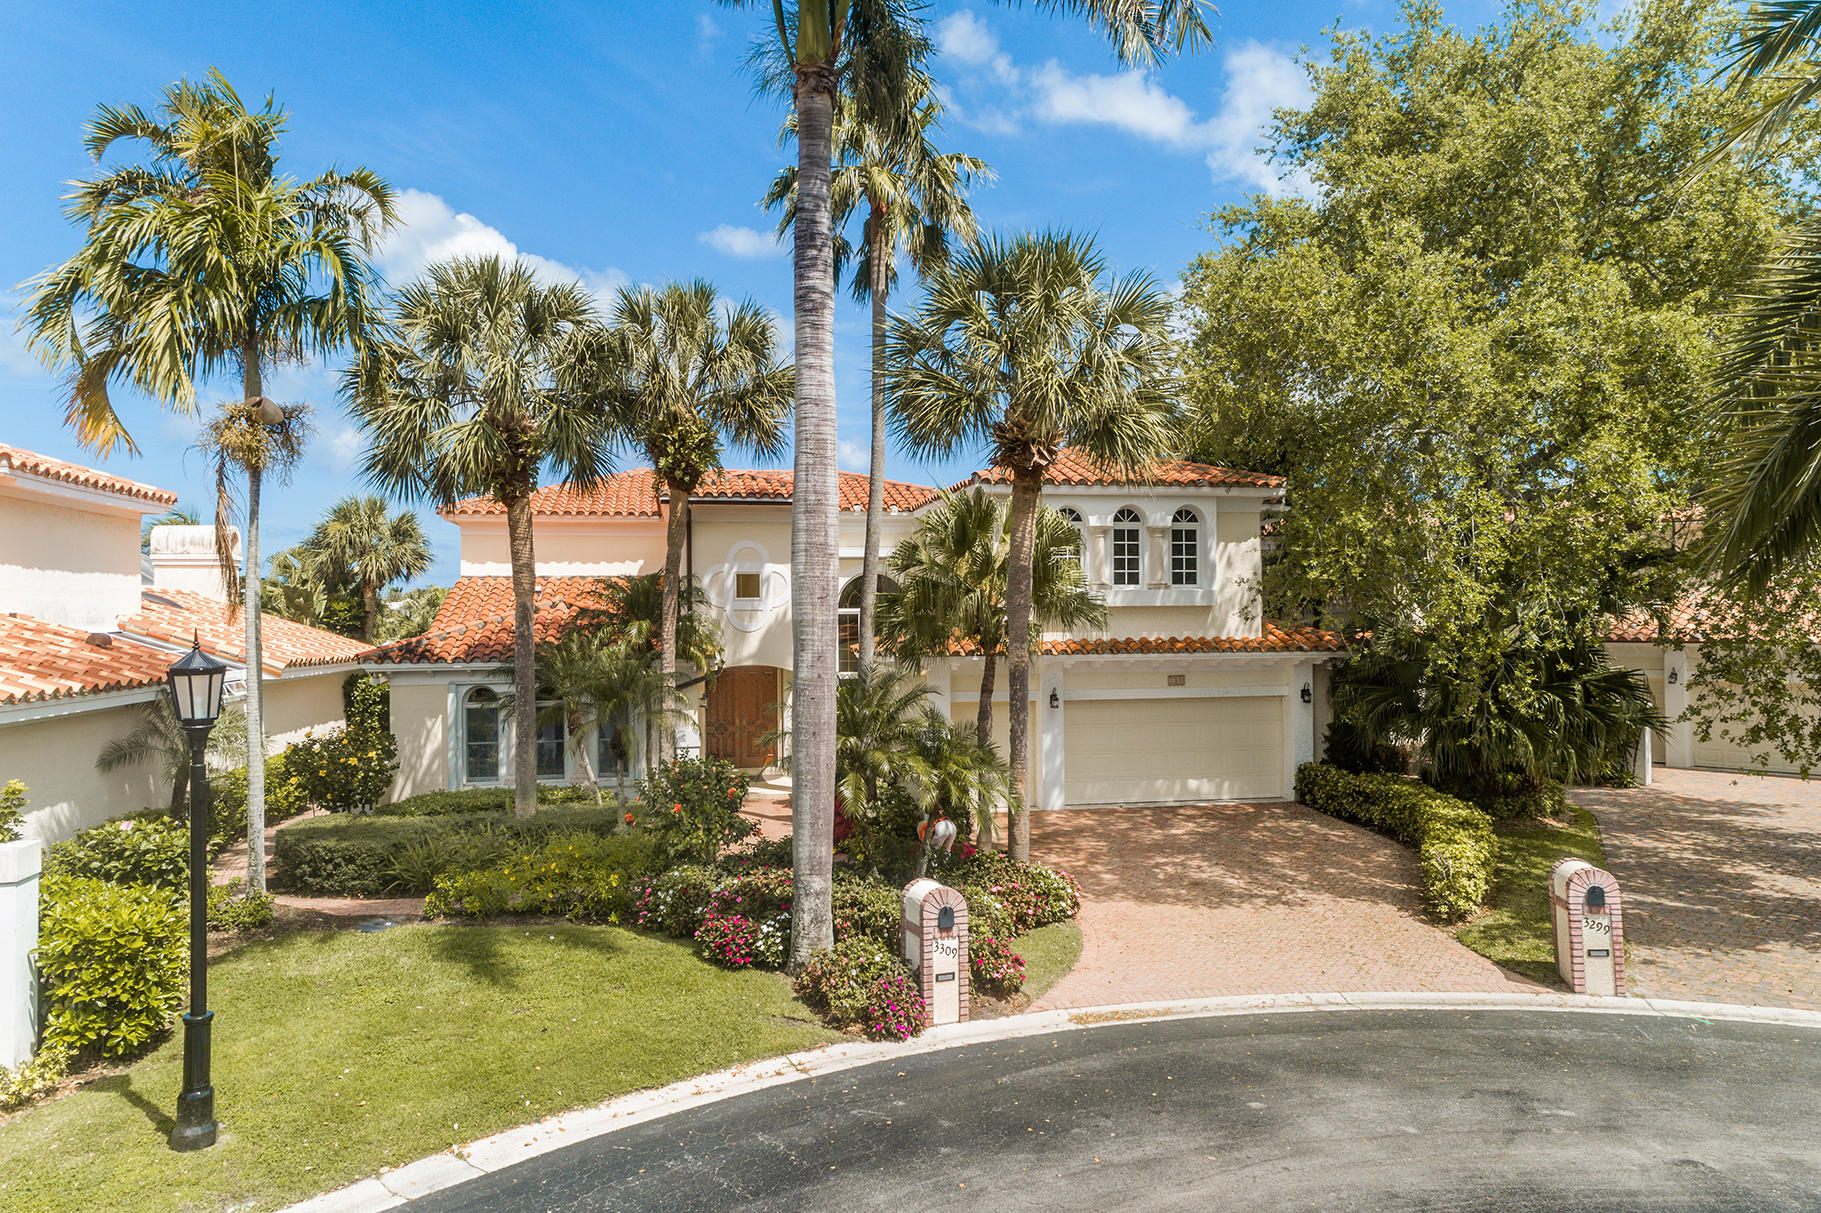 3309 Bridgegate Drive, Jupiter, Florida 33477, 4 Bedrooms Bedrooms, ,4.1 BathroomsBathrooms,A,Single family,Bridgegate,RX-10611307